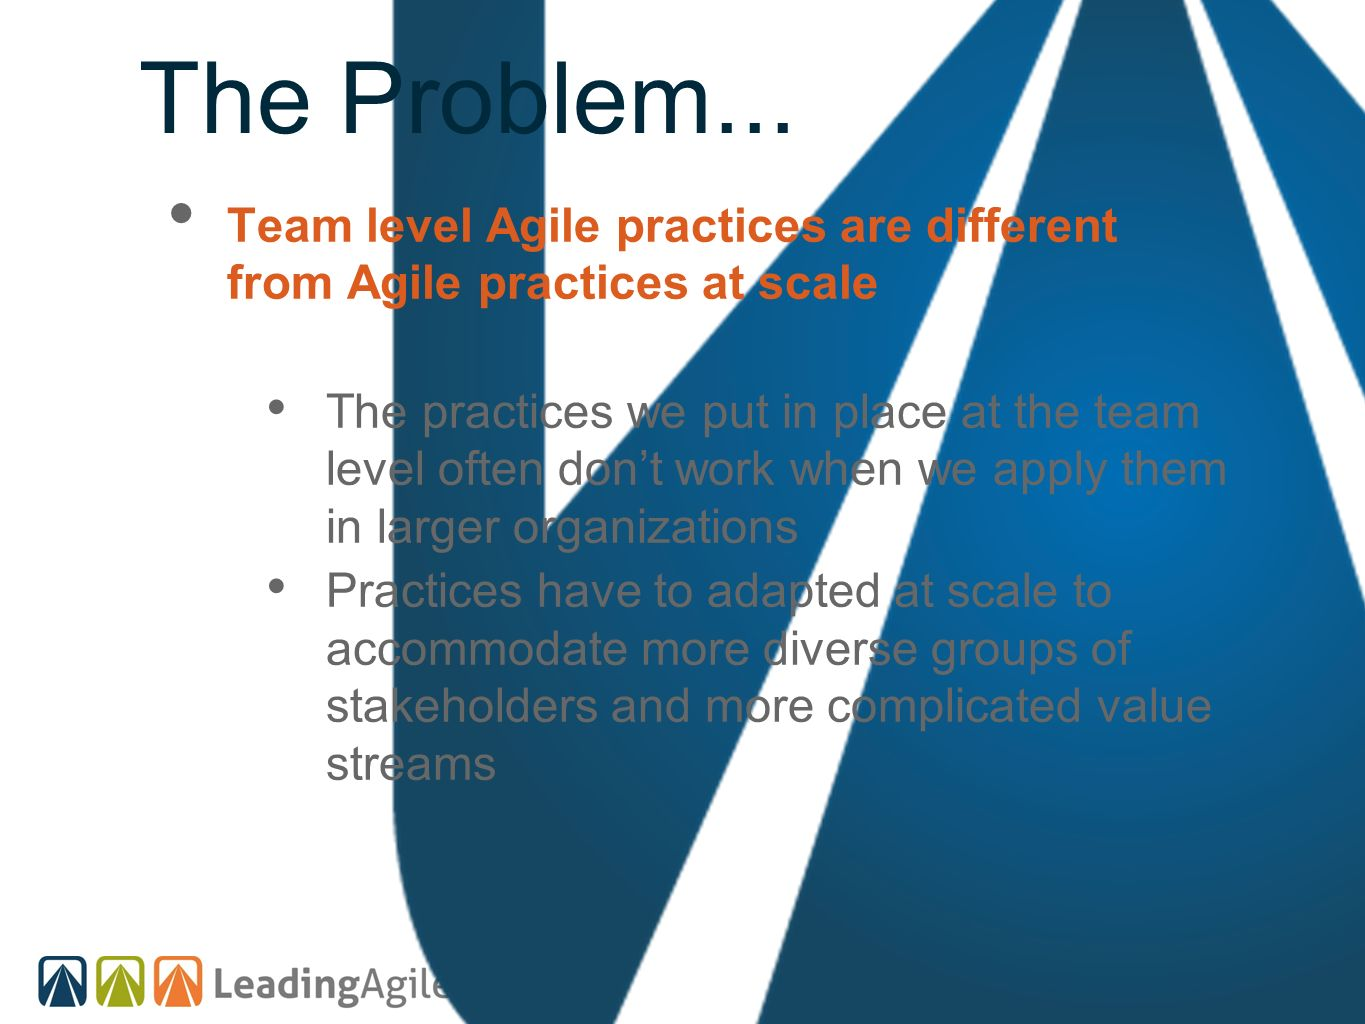 The Problem... Team level Agile practices are different from Agile practices at scale.